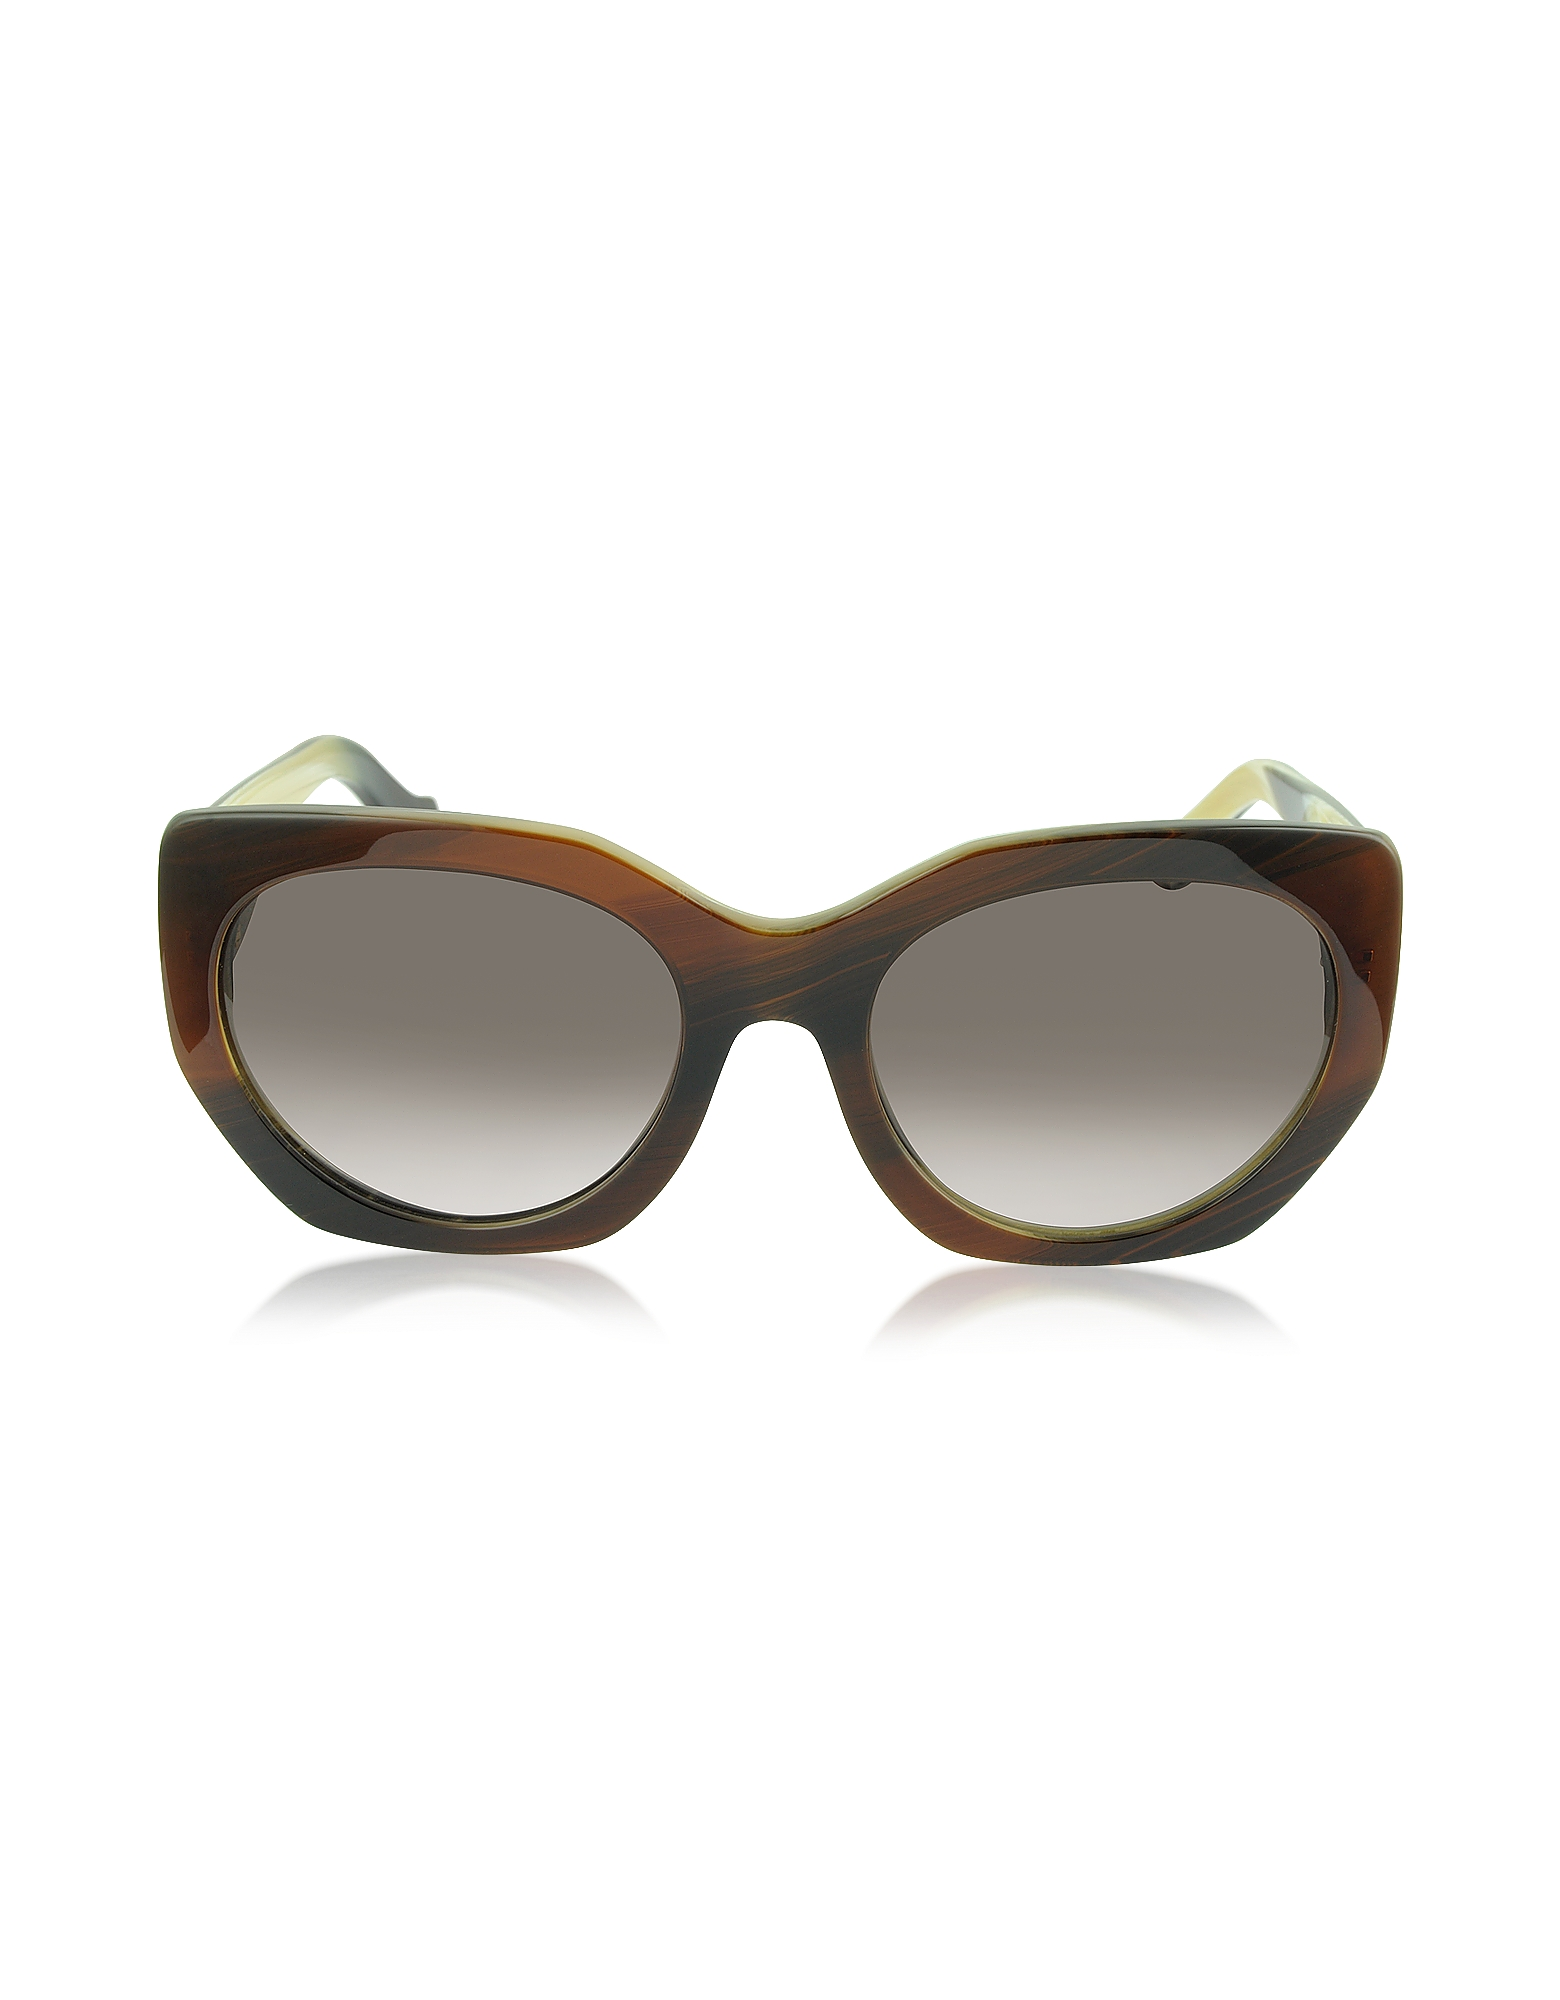 Balenciaga Sunglasses, BA0017 47T Brown Horn Acetate Cat Eye Sunglasses